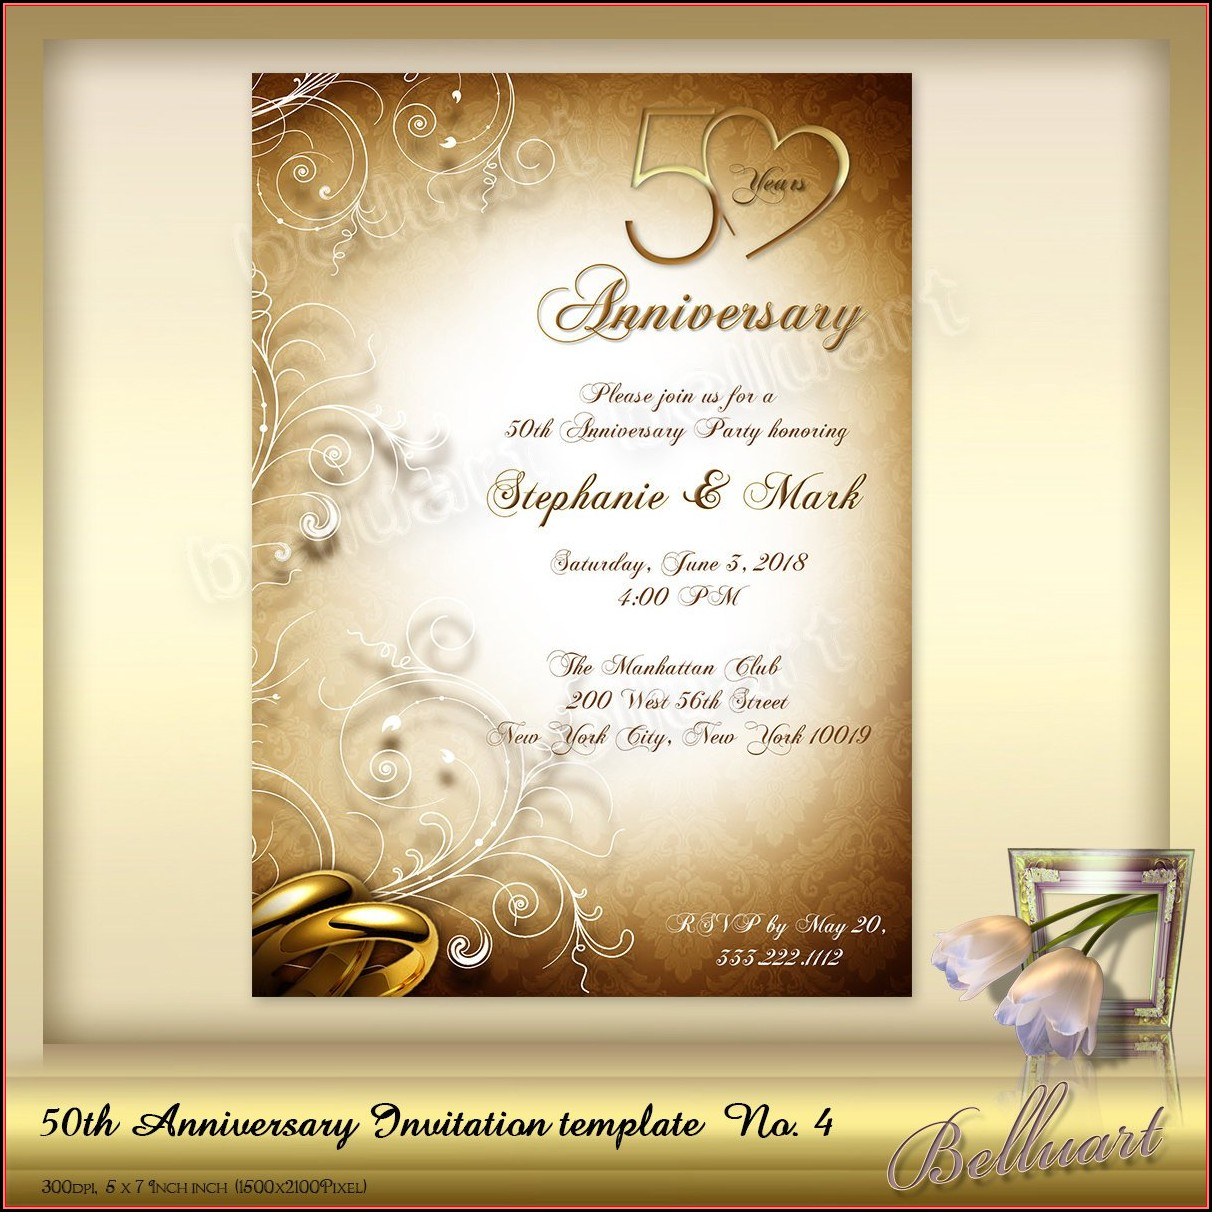 Invitations Templates Free Download